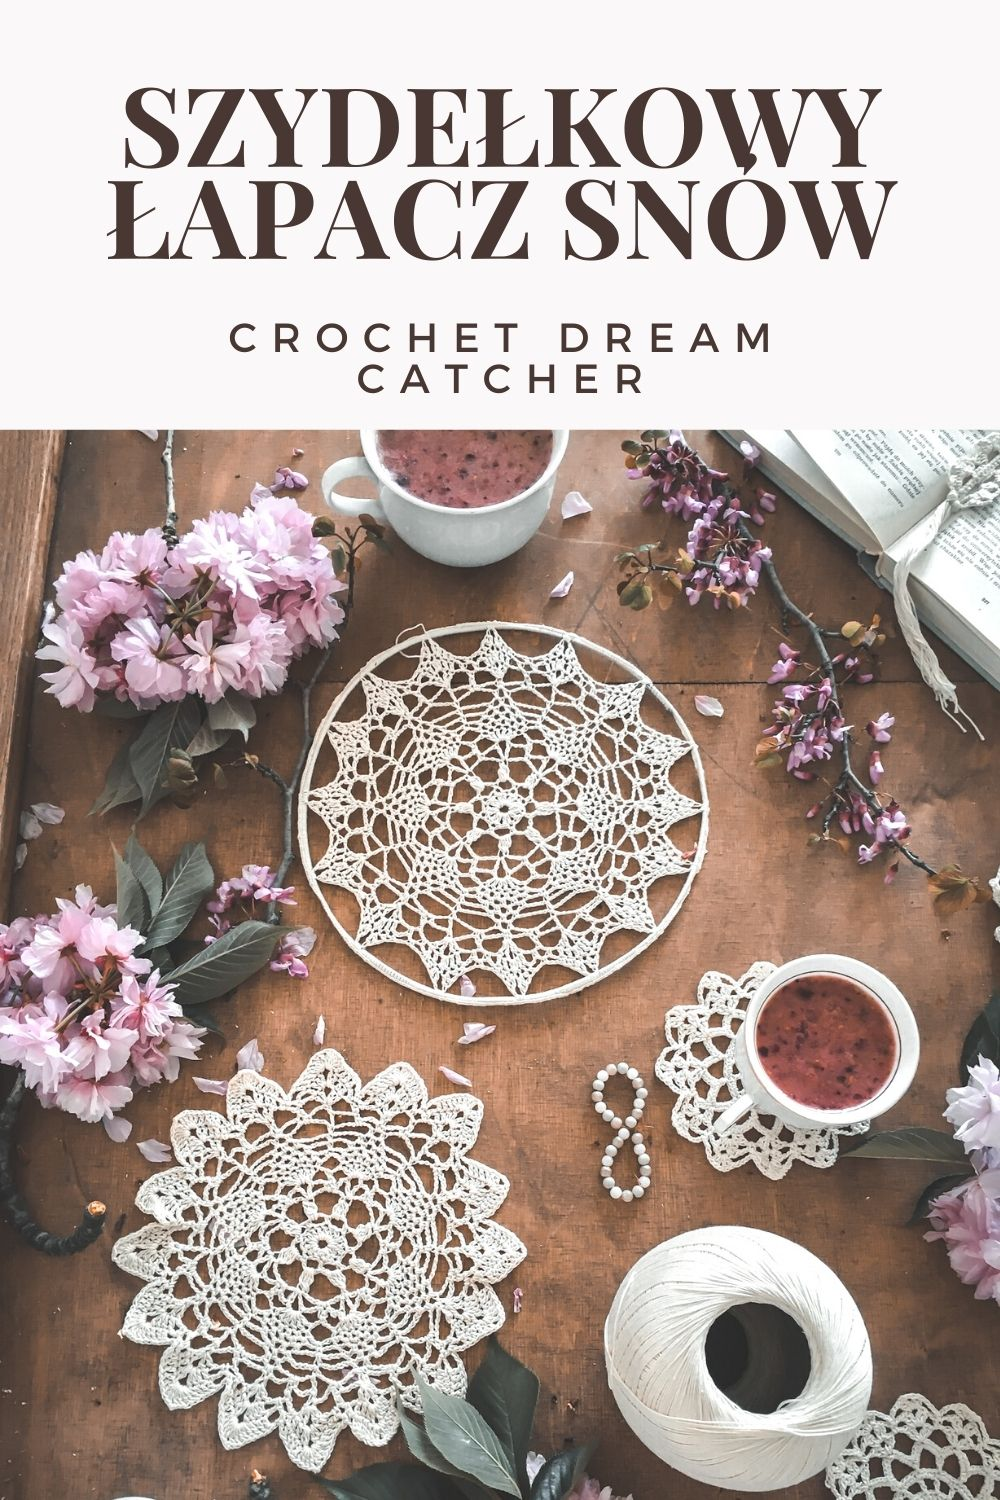 SZYDELKOWY LAPACZ SNOW CROCHET DREAM CATCHER Z SERWETKI